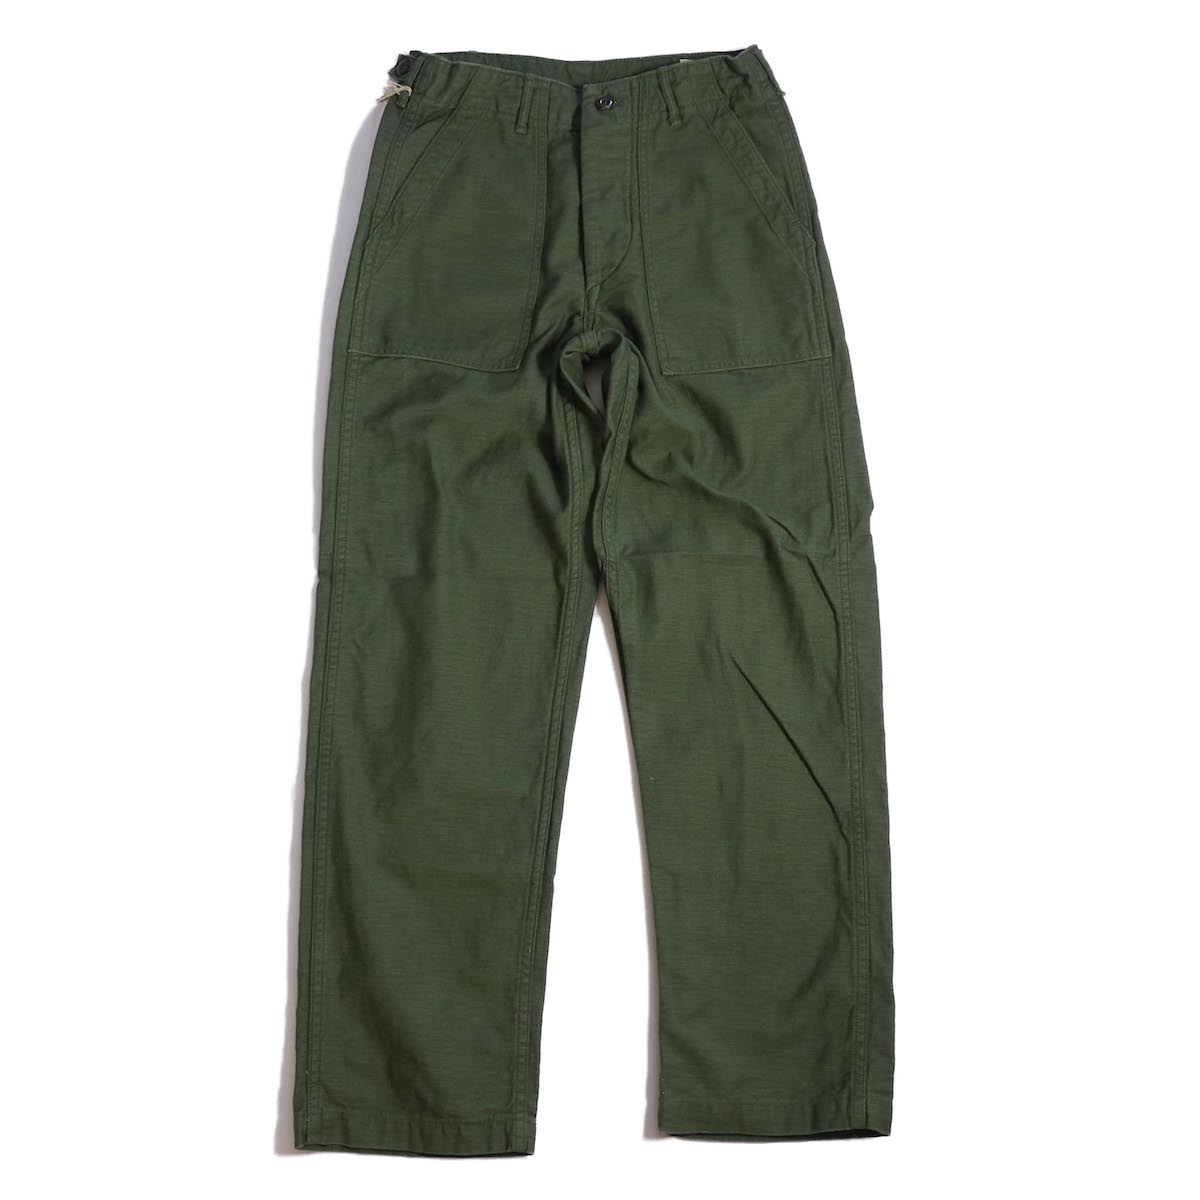 orSlow / US ARMY FATIGUE PANTS